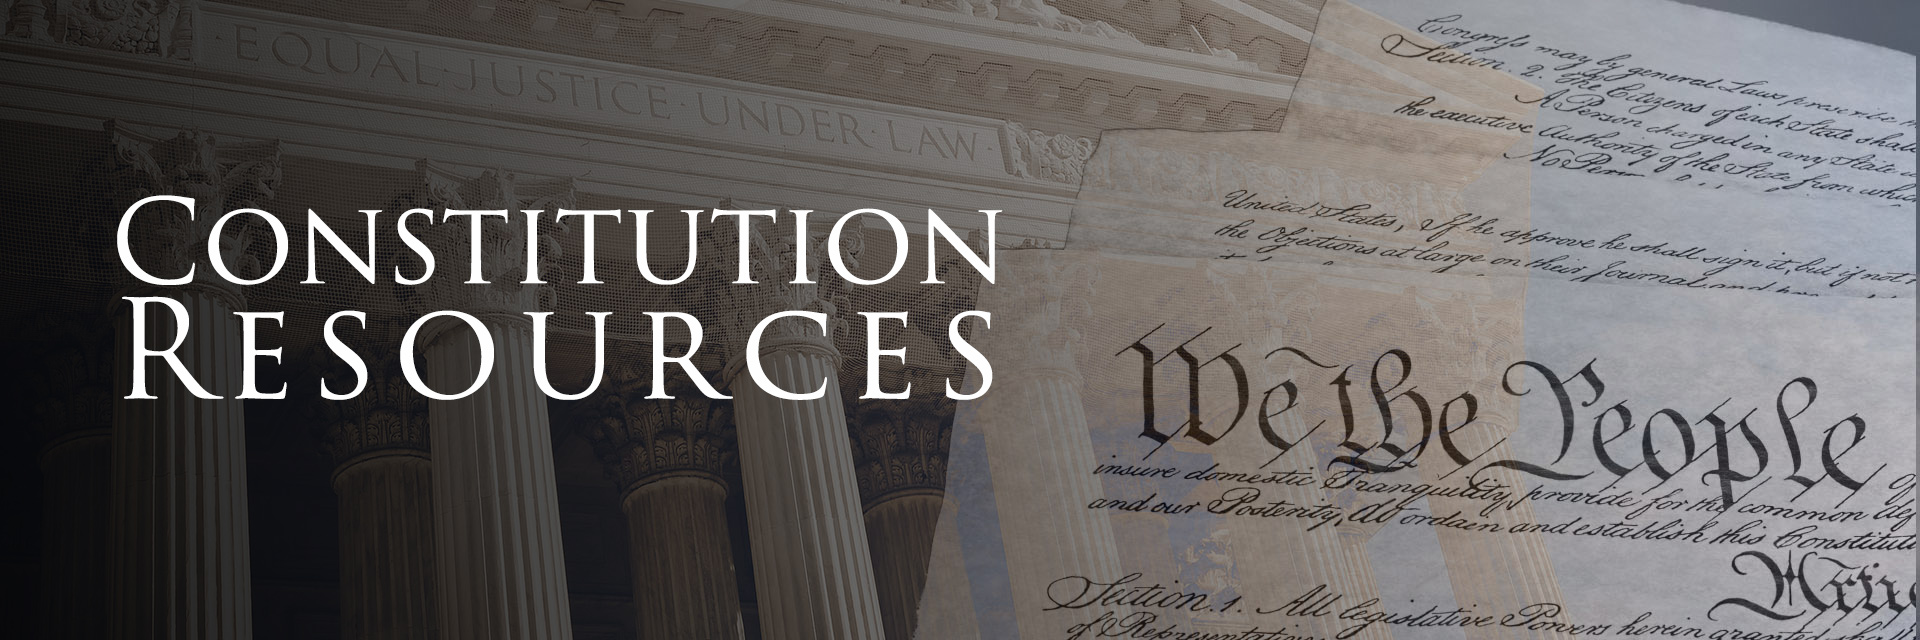 Constitution-Resources